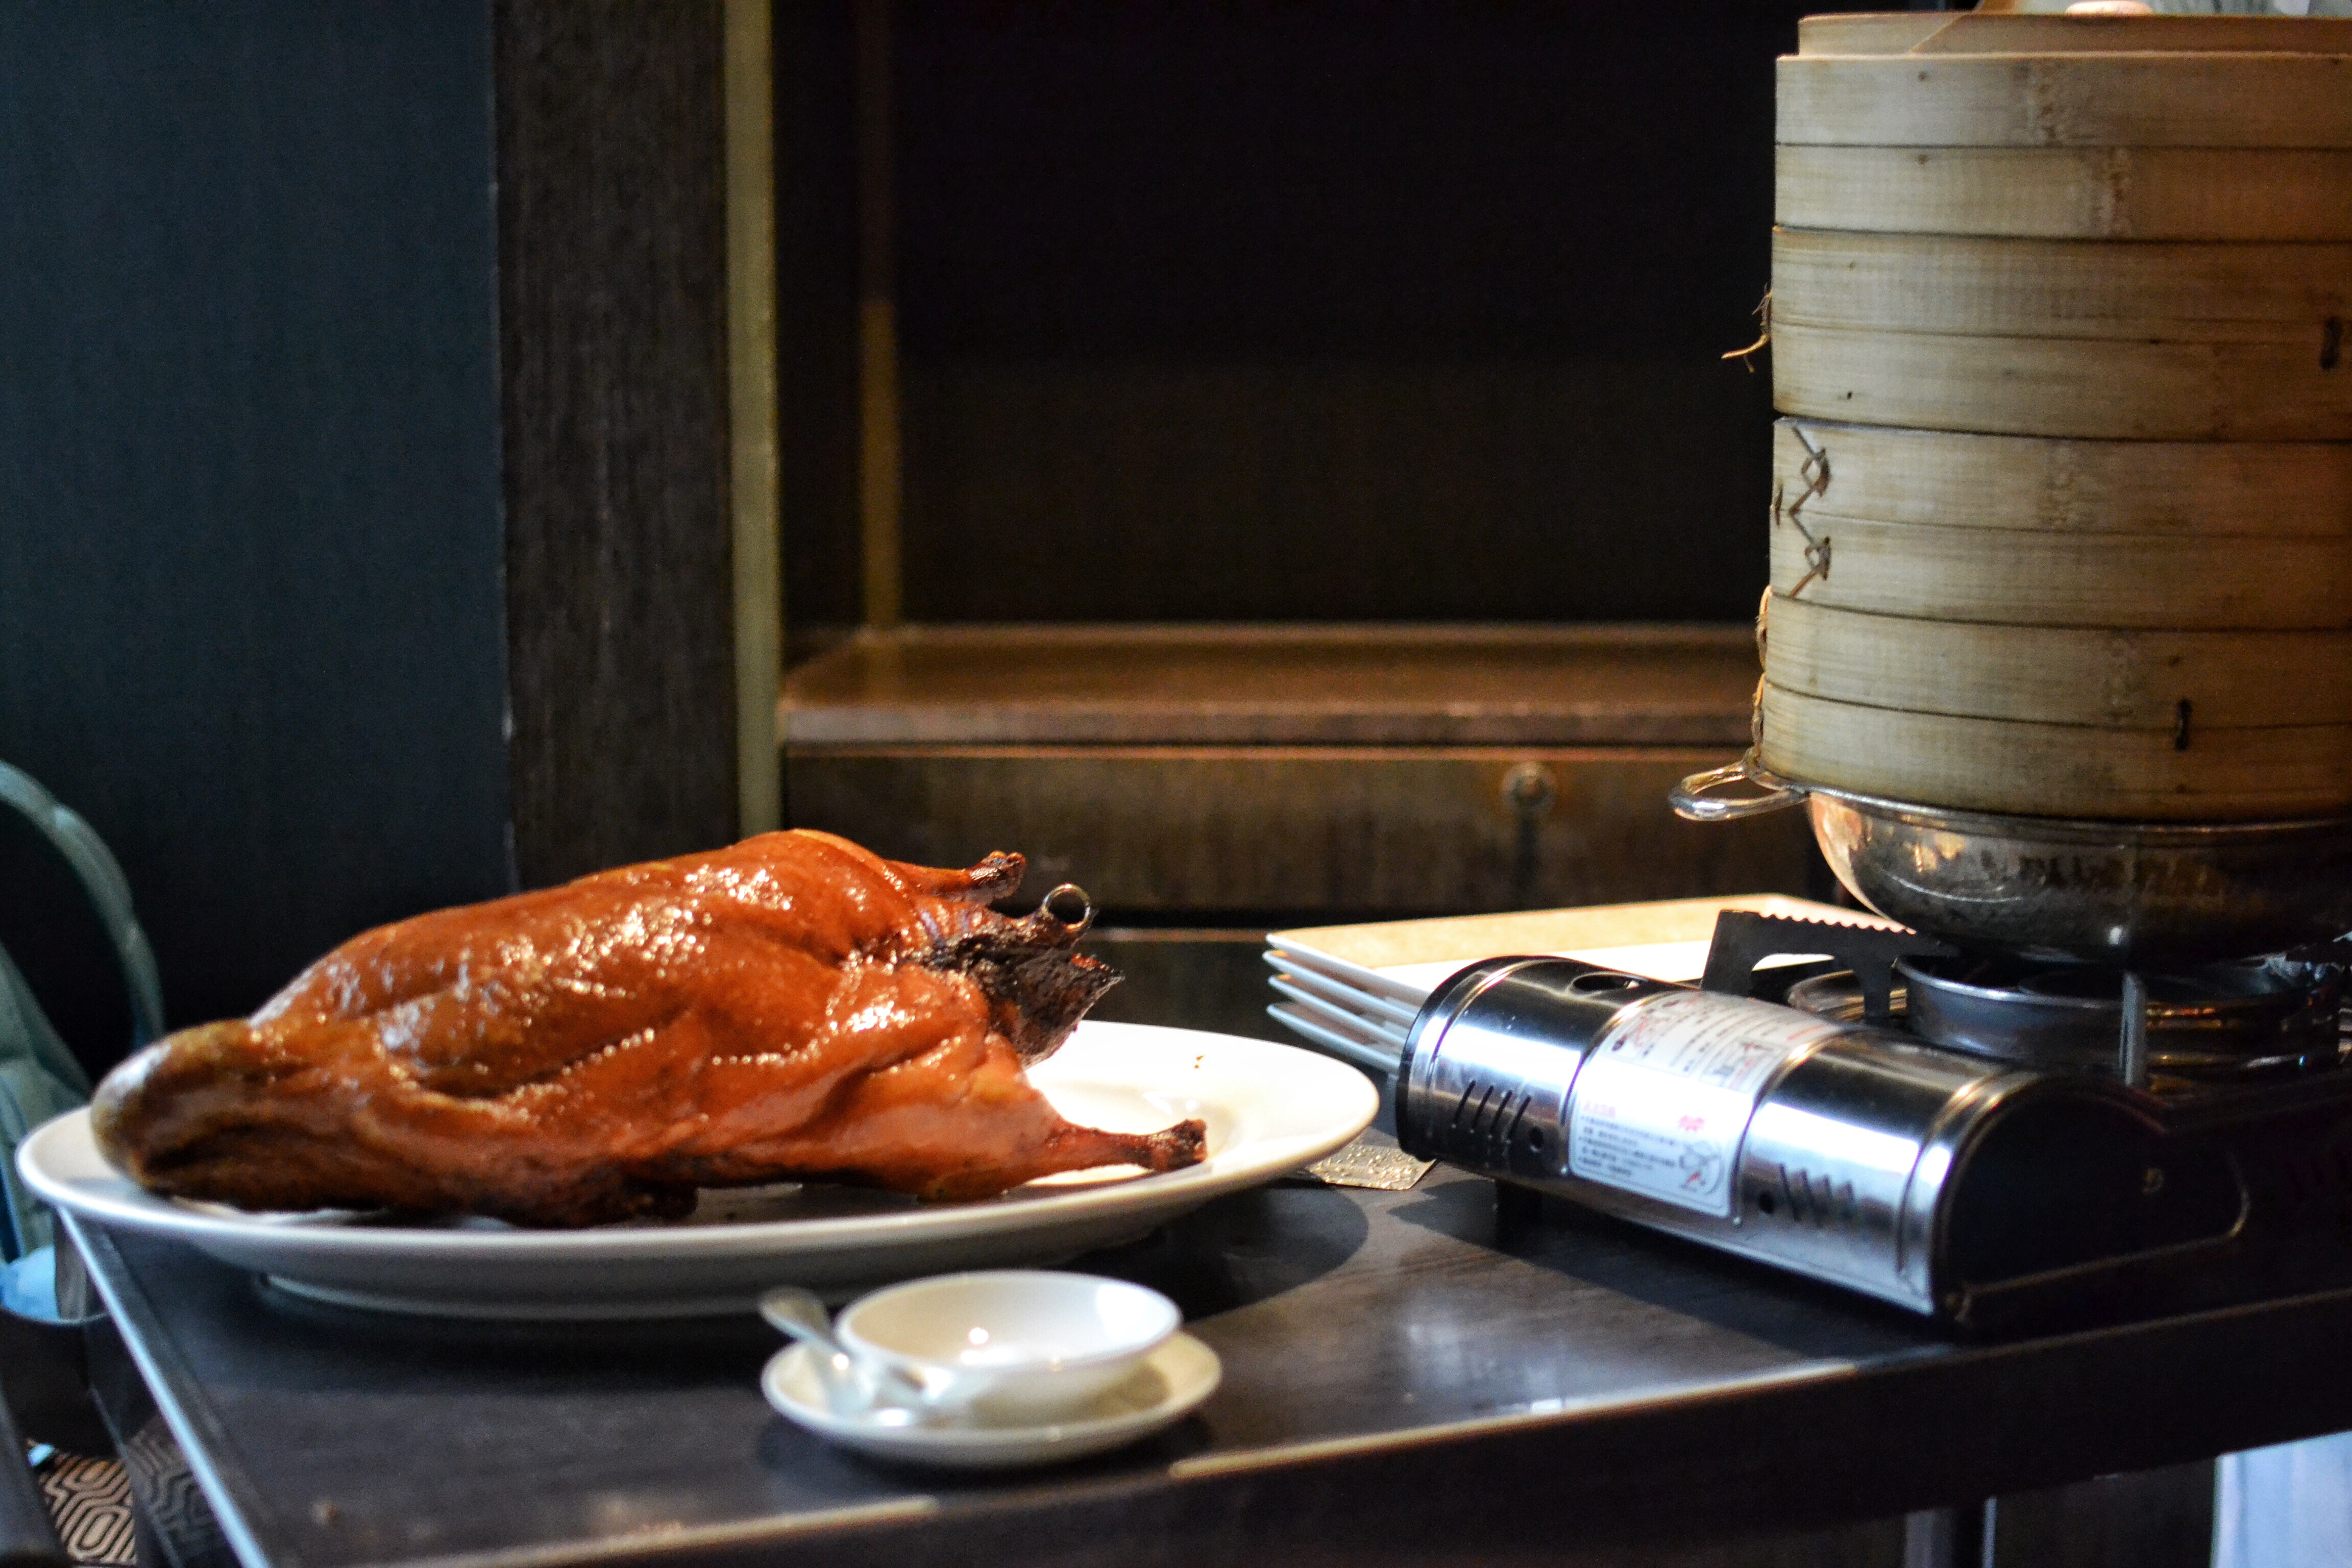 Hotel Eastern Plaza Peking Duck At Shang Palace Shangri Las Far Eastern Plaza Hotel